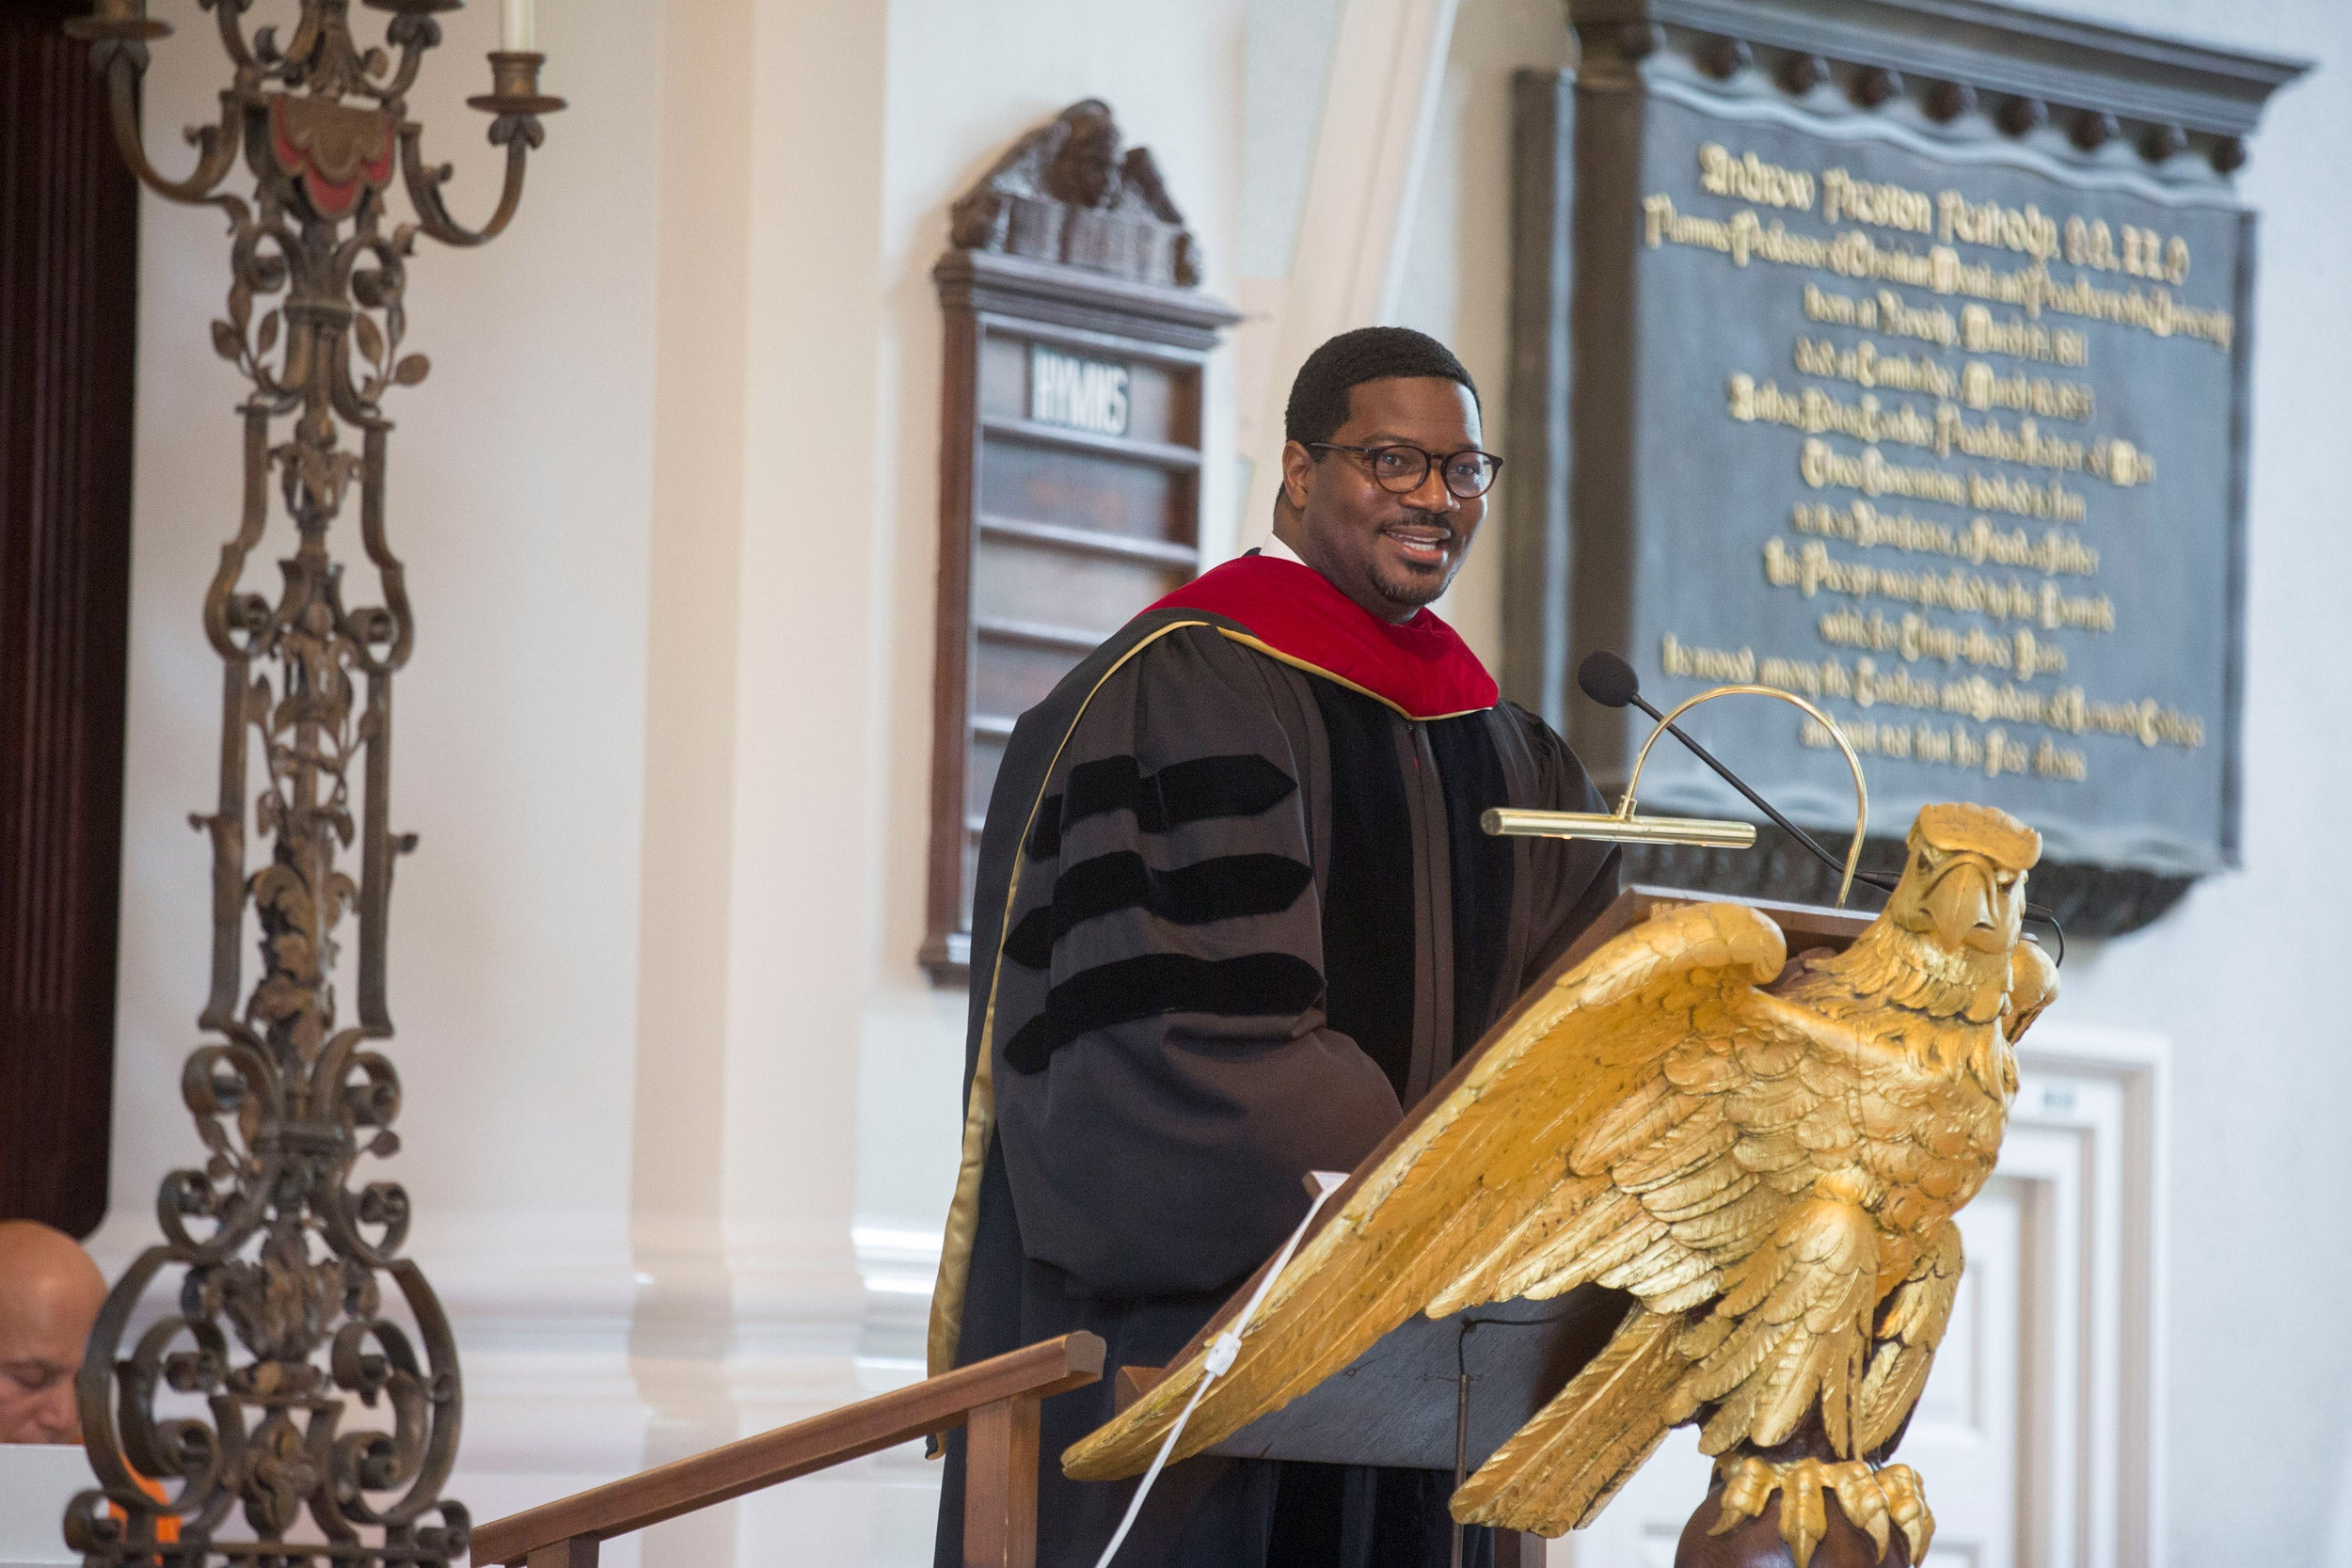 Jonathan Walton, who assumed leadership of the Memorial Church in 2012, will step down this summer to join Wake Forest University School of Divinity, Harvard announced today.